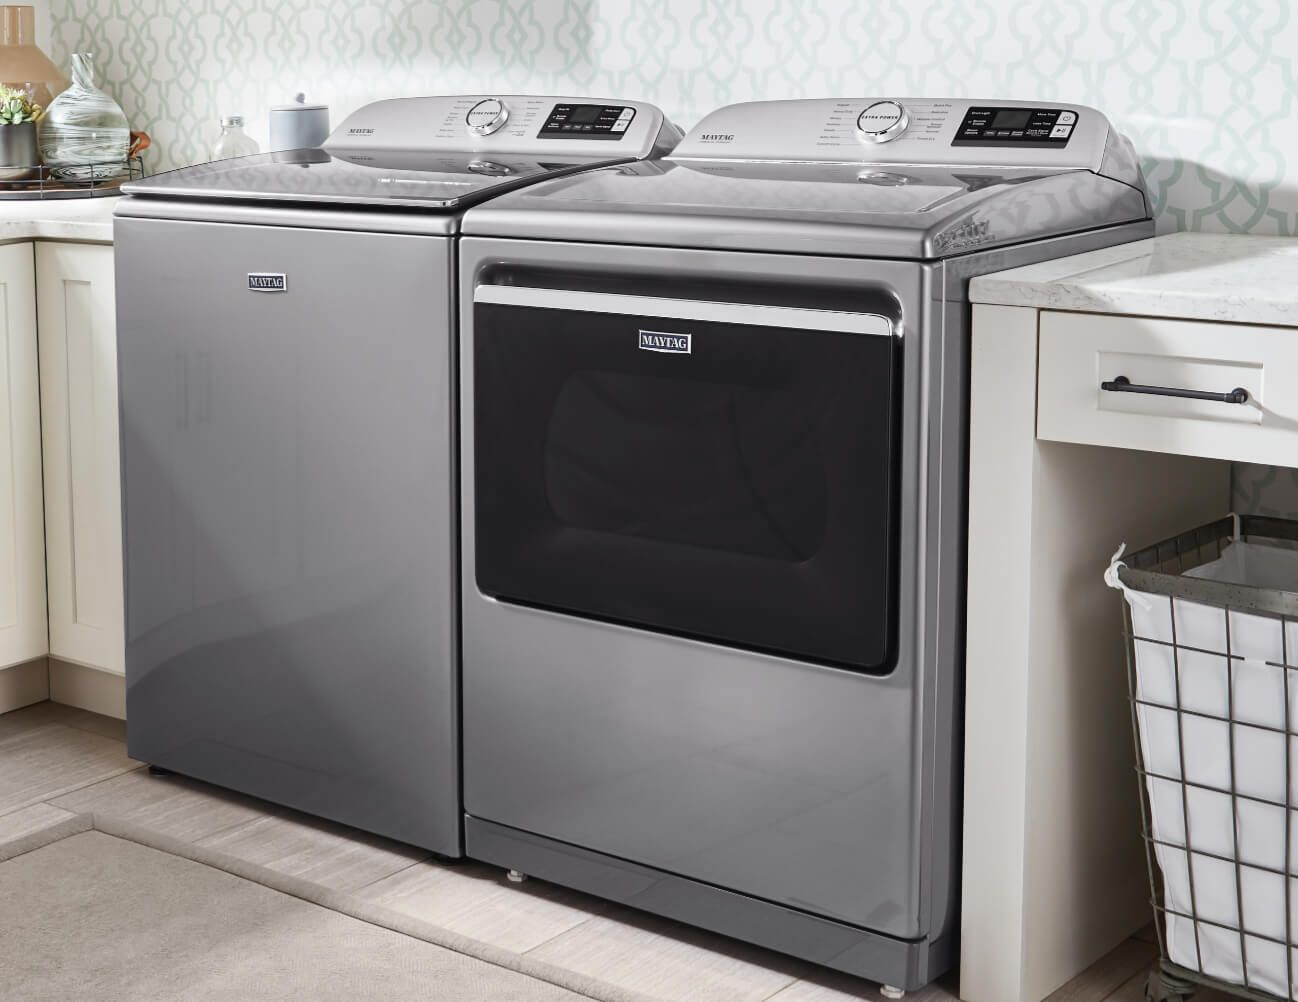 Visit the Maytag Info Hub for more information.